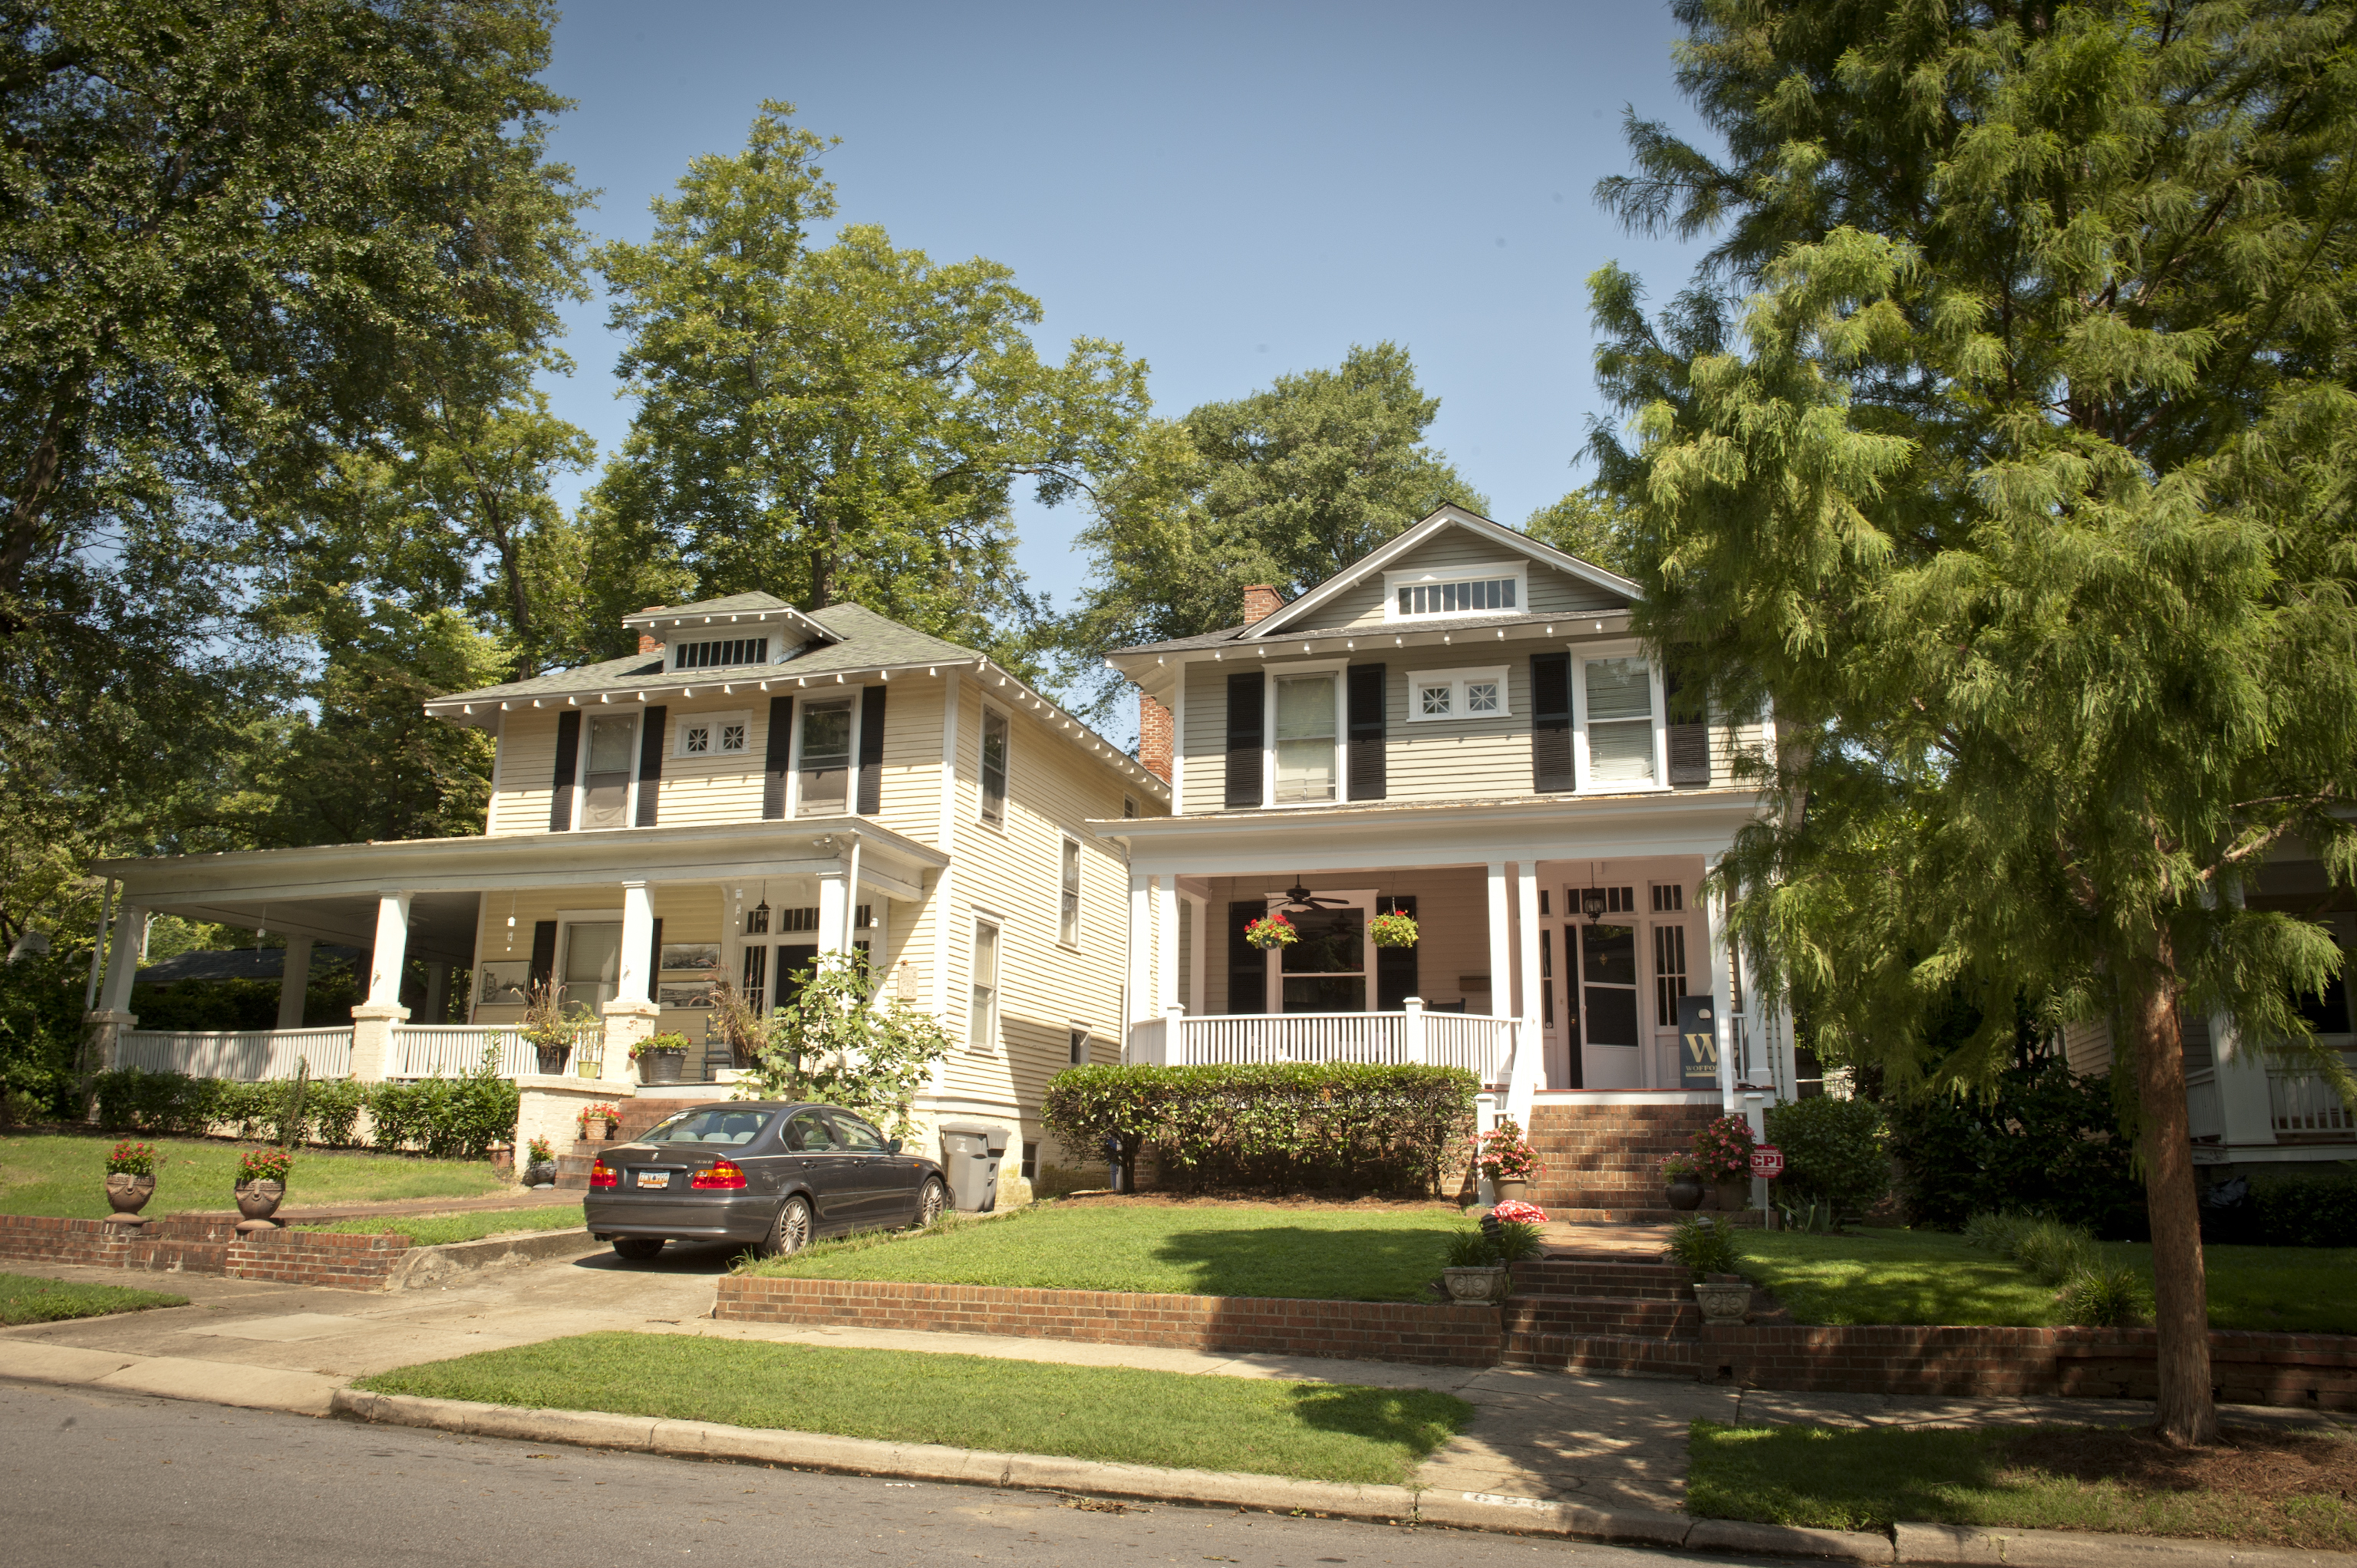 The City of Spartanburg includes many beautiful neighborhoods that are close to schools, parks, work, shopping and other great amenities.